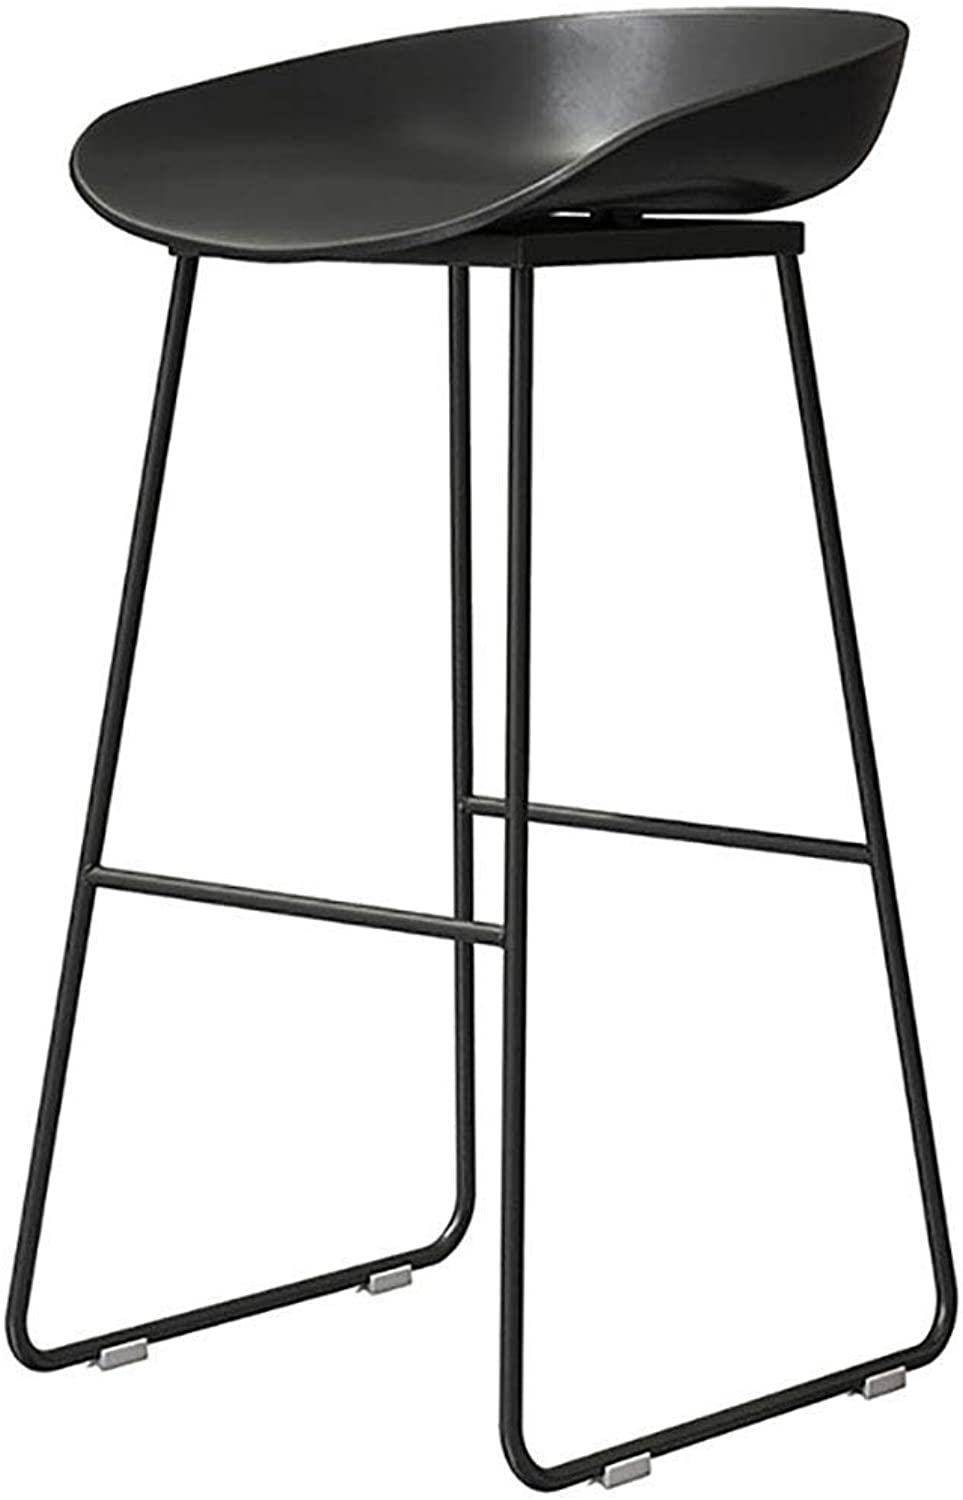 Contemporary Height Barstool, Kitchen Counter Breakfast Stool Chair,Black Matte Resin Seat with gold Metal Legs LEBAO (color   Black, Size   Seat heigh-65cm)